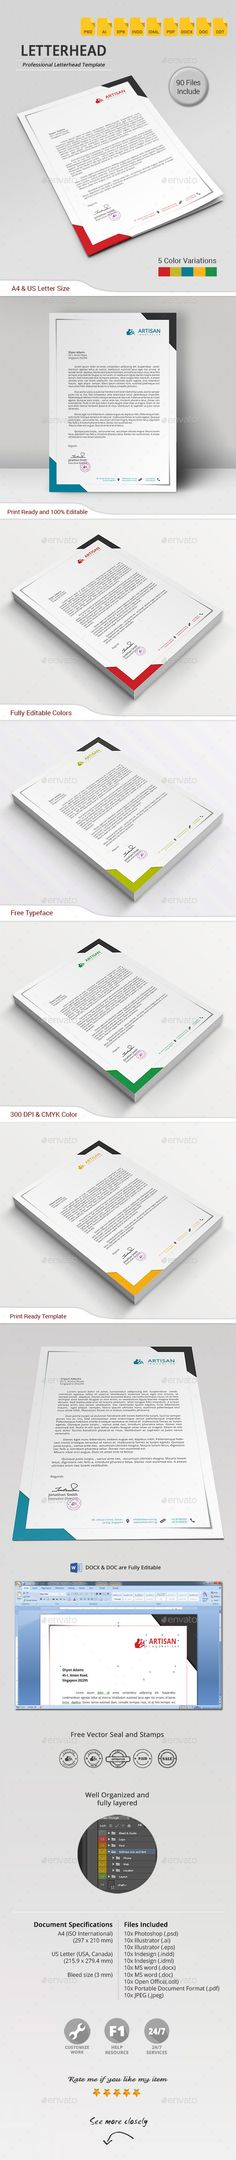 A simple unique letterhead for all kind of business and personal purpose usages  #stationery #identity #print ready • Click here to download ! http://graphicriver.net/item/letterhead/10287939?ref=pxcr